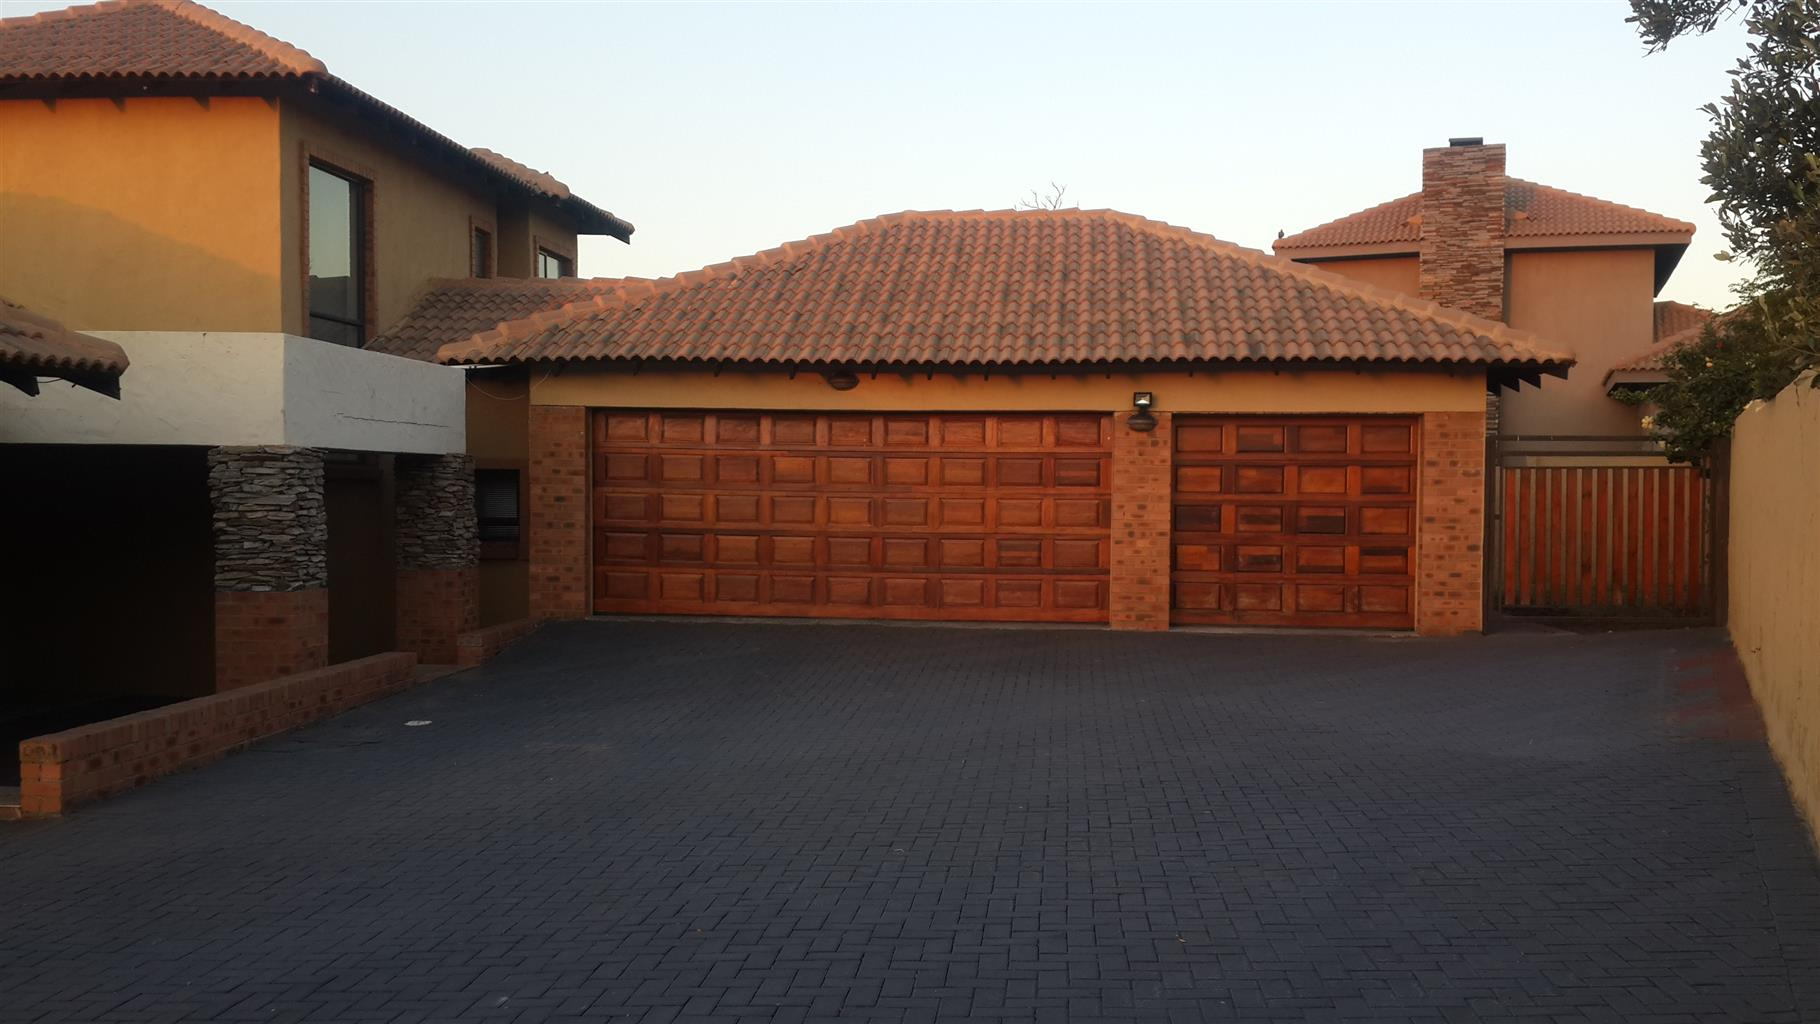 4 bedroom mension for sale has 3 garages swimming pool and big yard